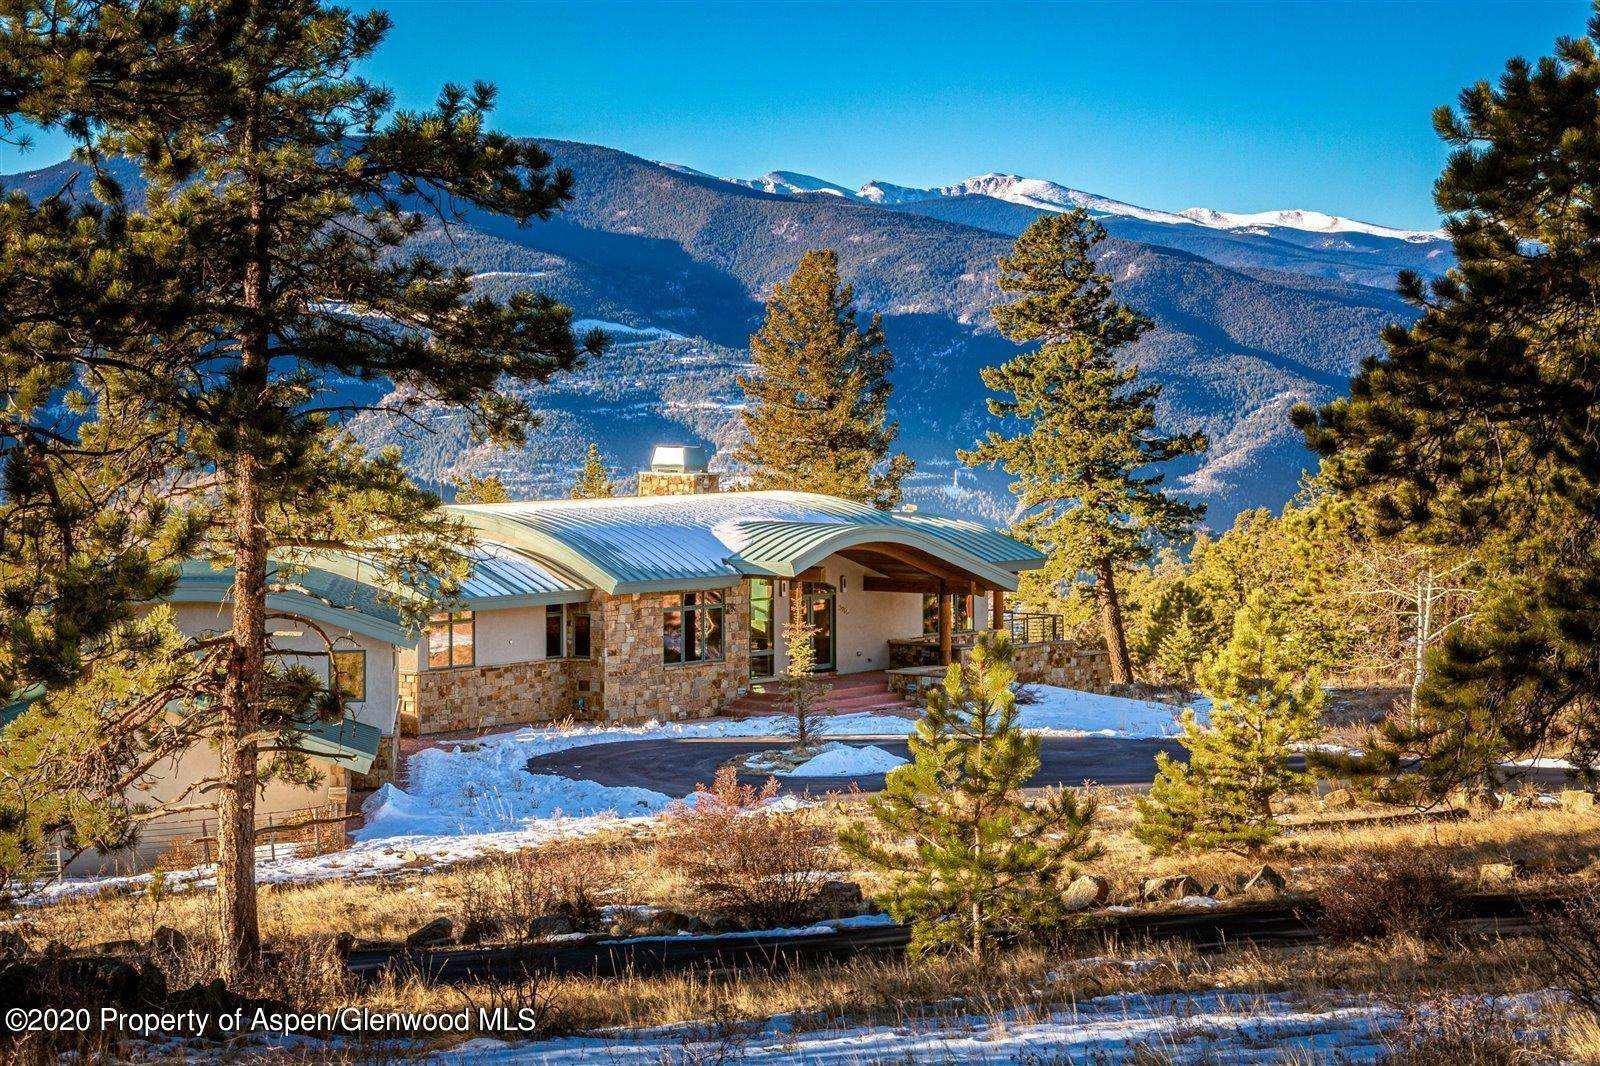 Single Family Home for Sale at Golden, Colorado - MLSID 167920 Golden, Colorado,80403 United States